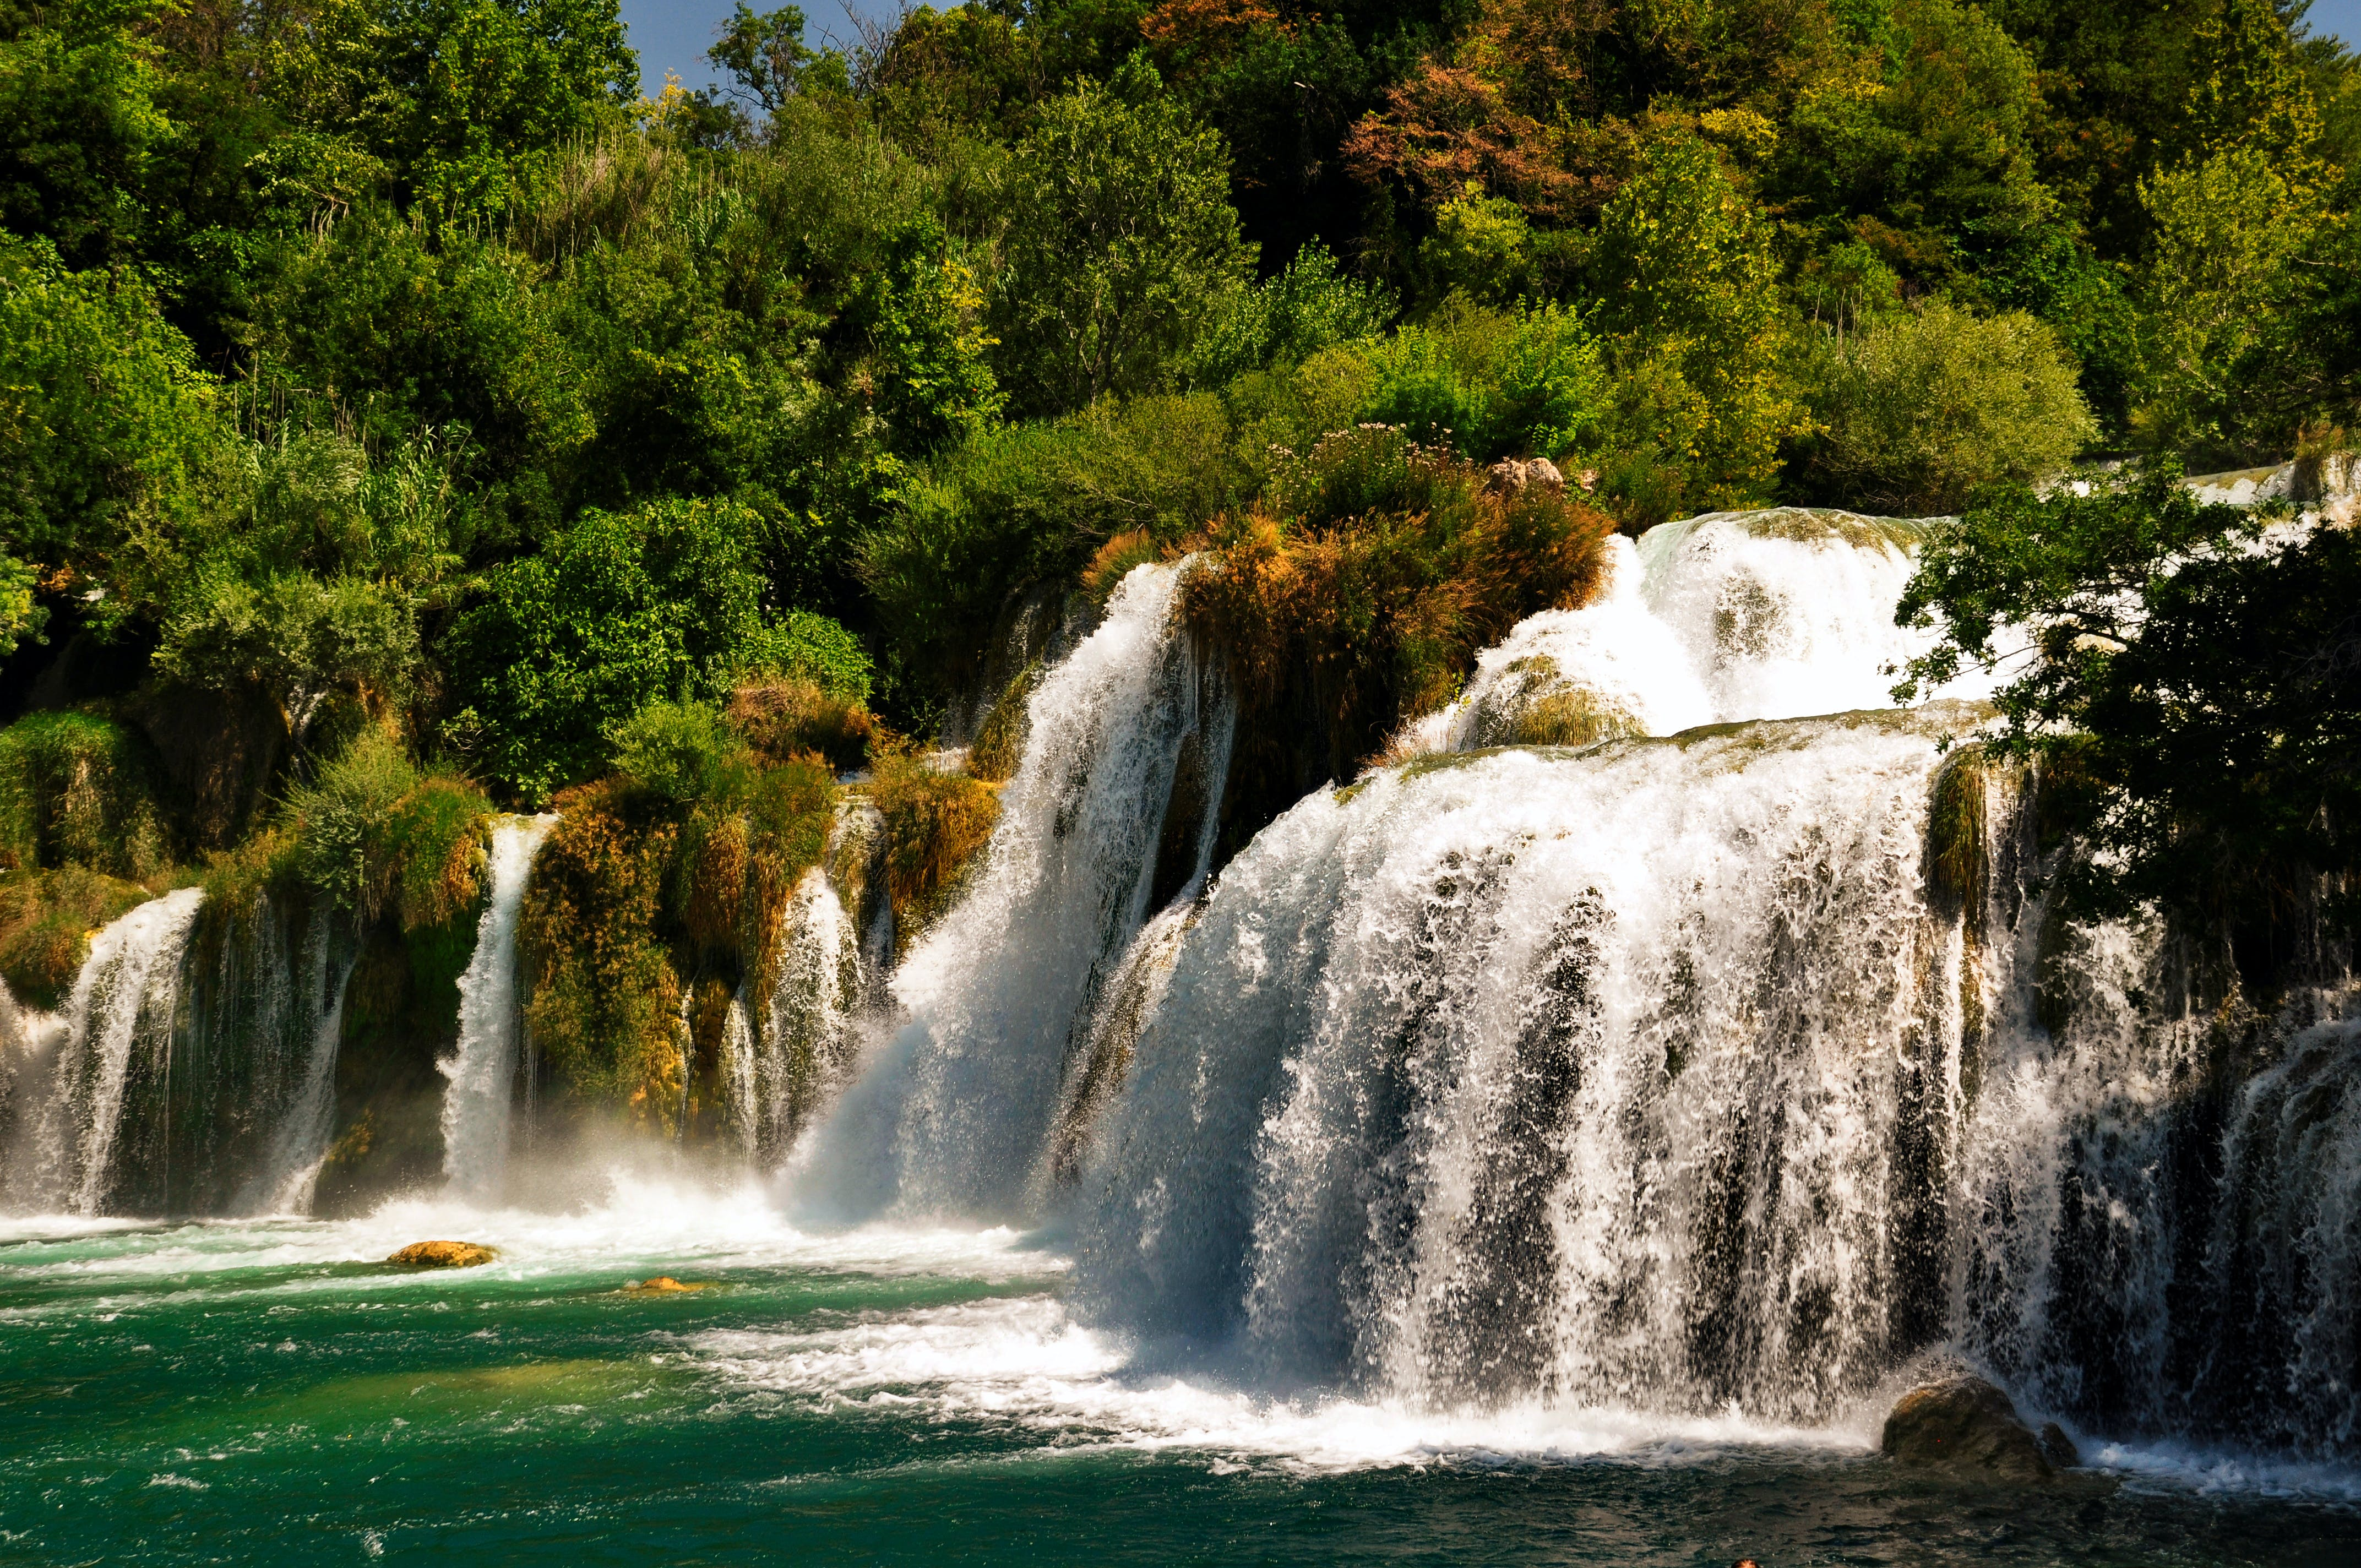 Landscape Photography of Water Falls